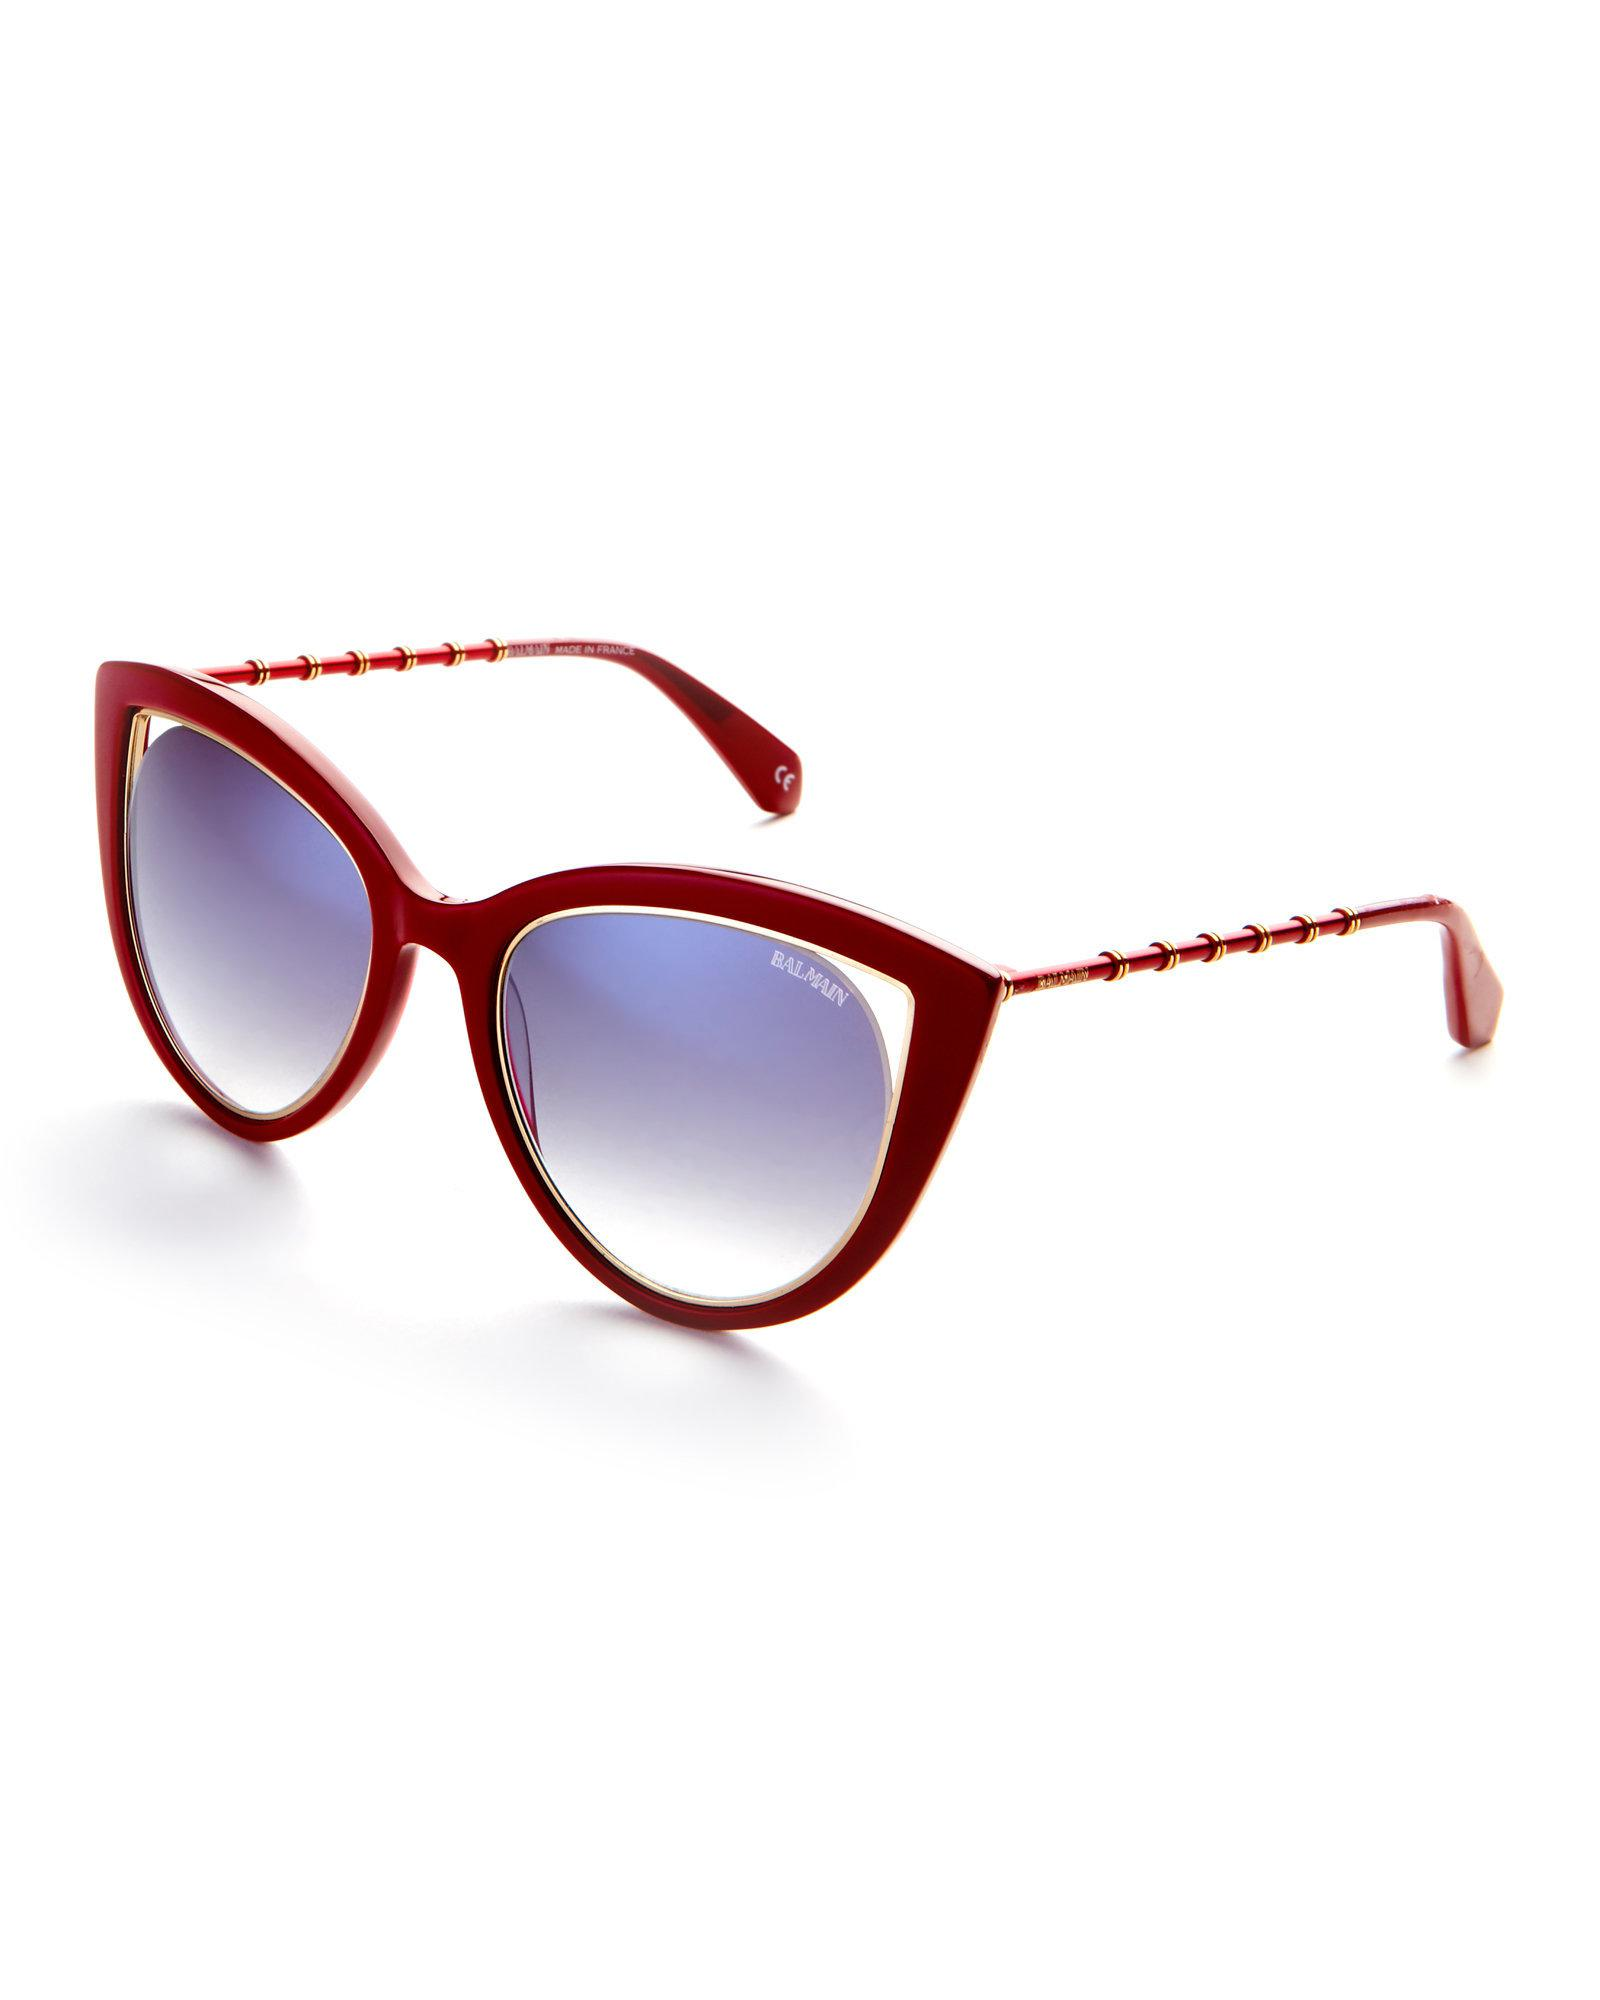 b6acc85b80 Lyst balmain red cat eye sunglasses in red jpg 1600x2000 Balmain sunglasses